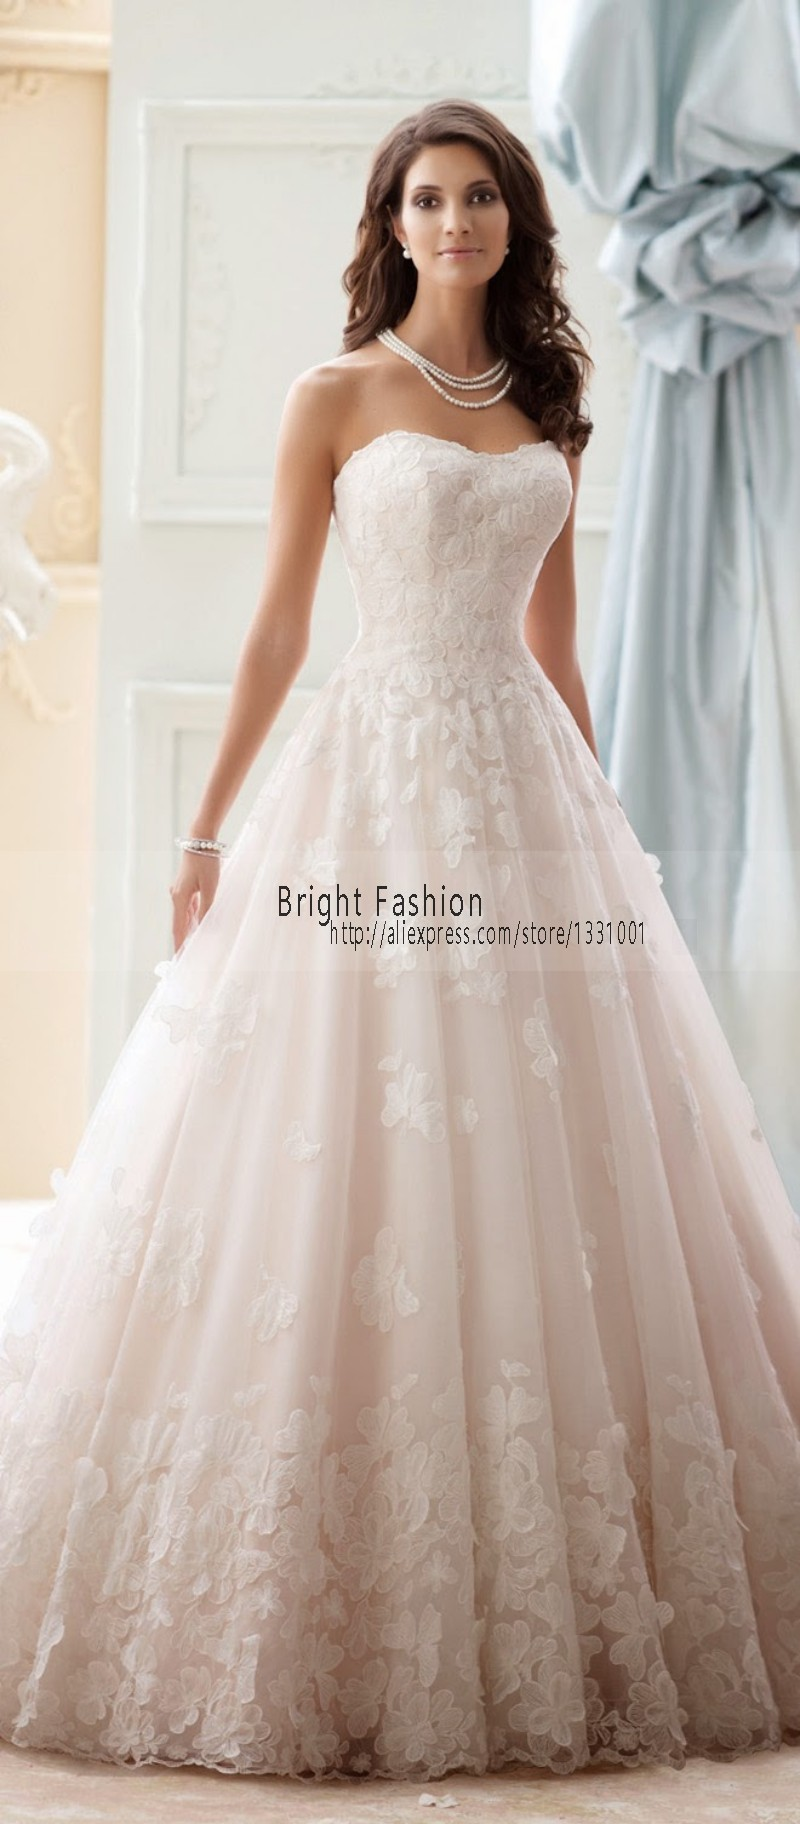 Aliexpress.com : Buy Spanish Style Wedding Dresses 2015 New Plus ...